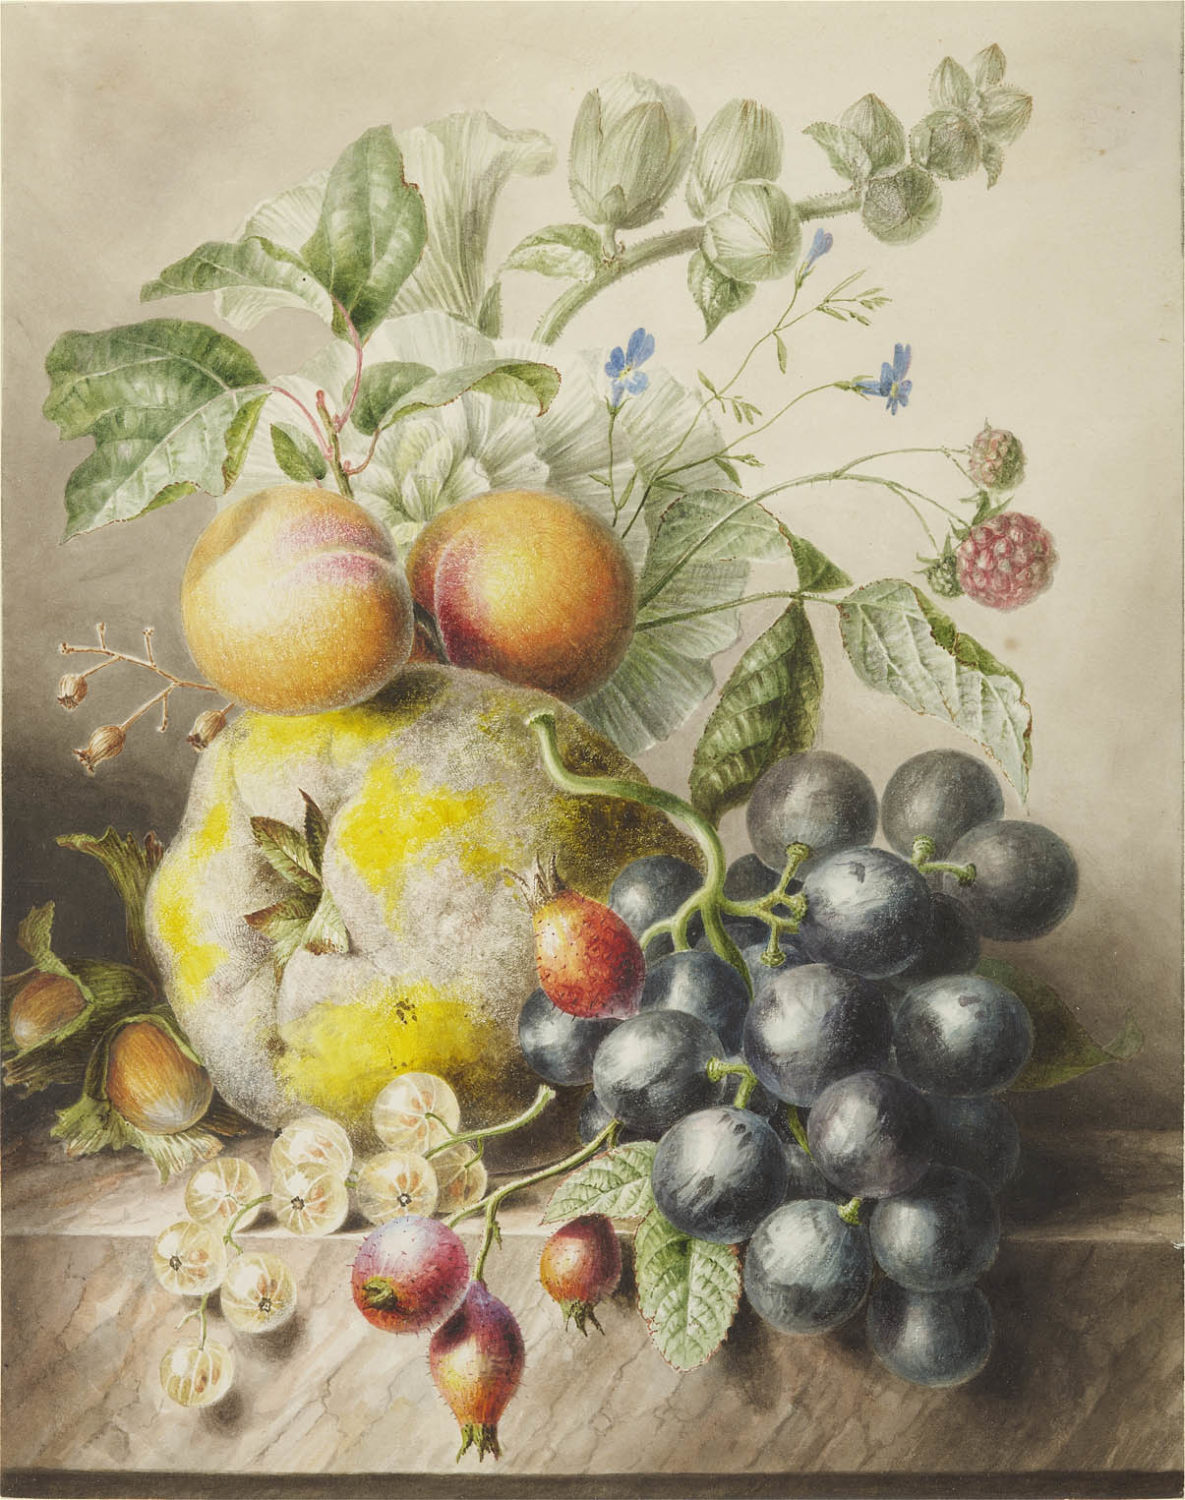 Willem Hekking Sr. | A still life with apricots, grapes and gooseberries | Kunsthandel Bies | Bies Gallery